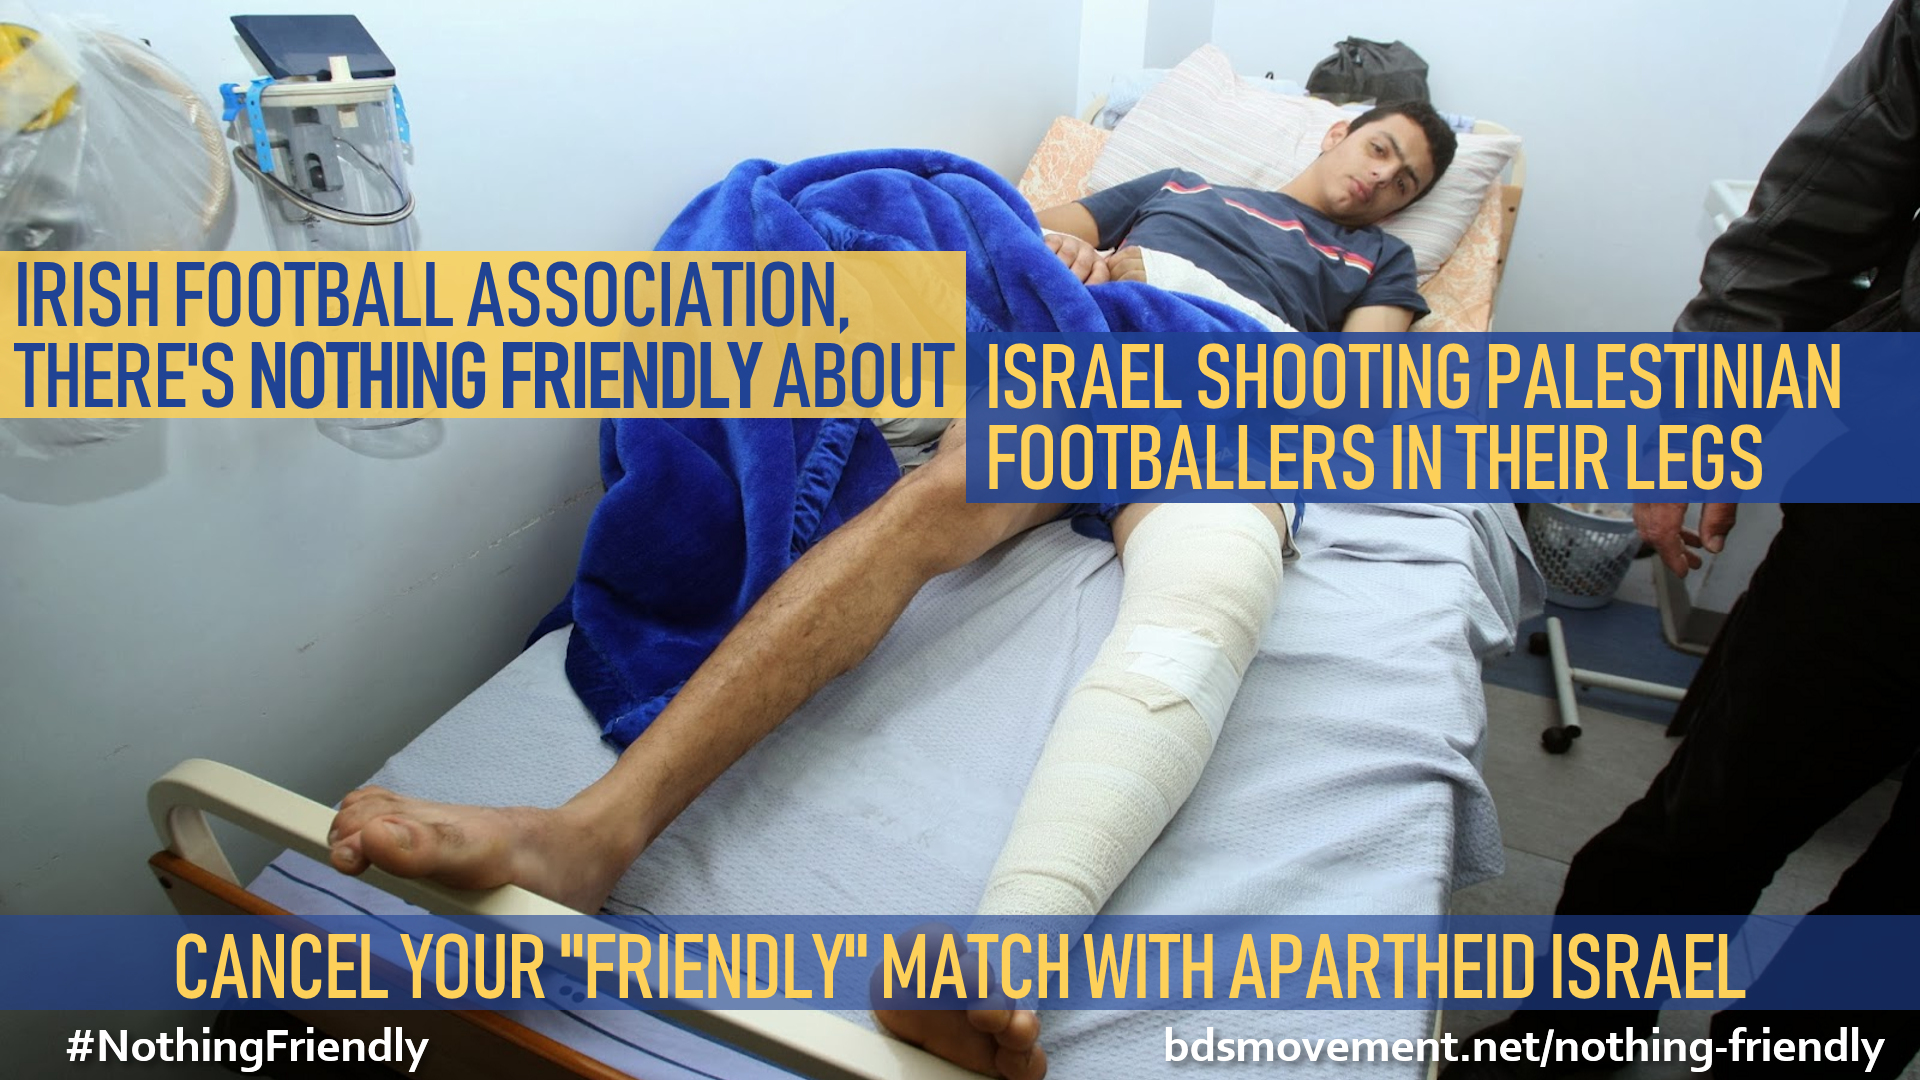 Irish Football Assoc, there's nothing friendly about shooting Palestinian footballers in their legs